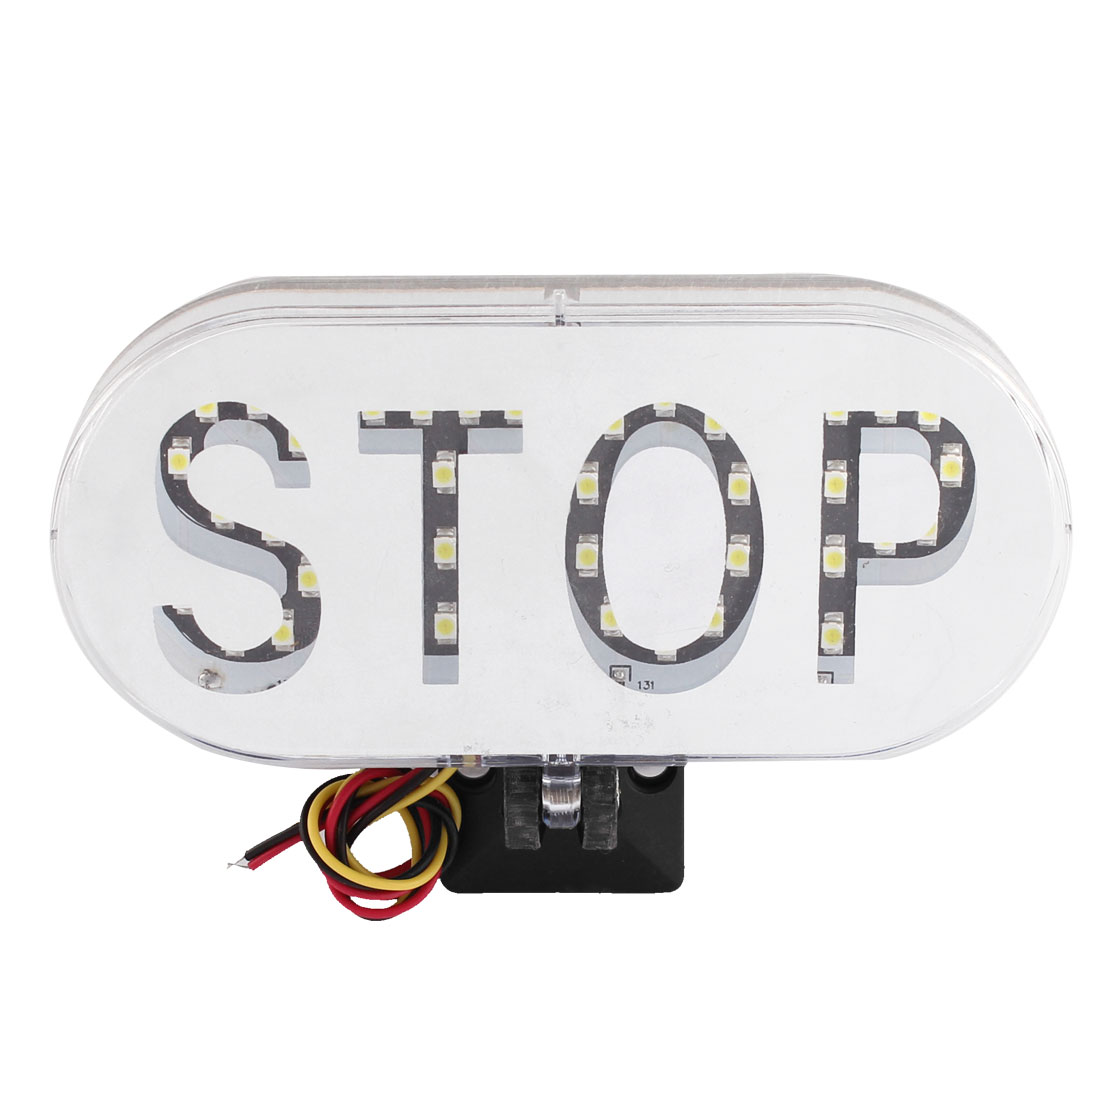 DC 12V White 36 LED Car Vehicle Stop Sign Brake Warning Light Lamp